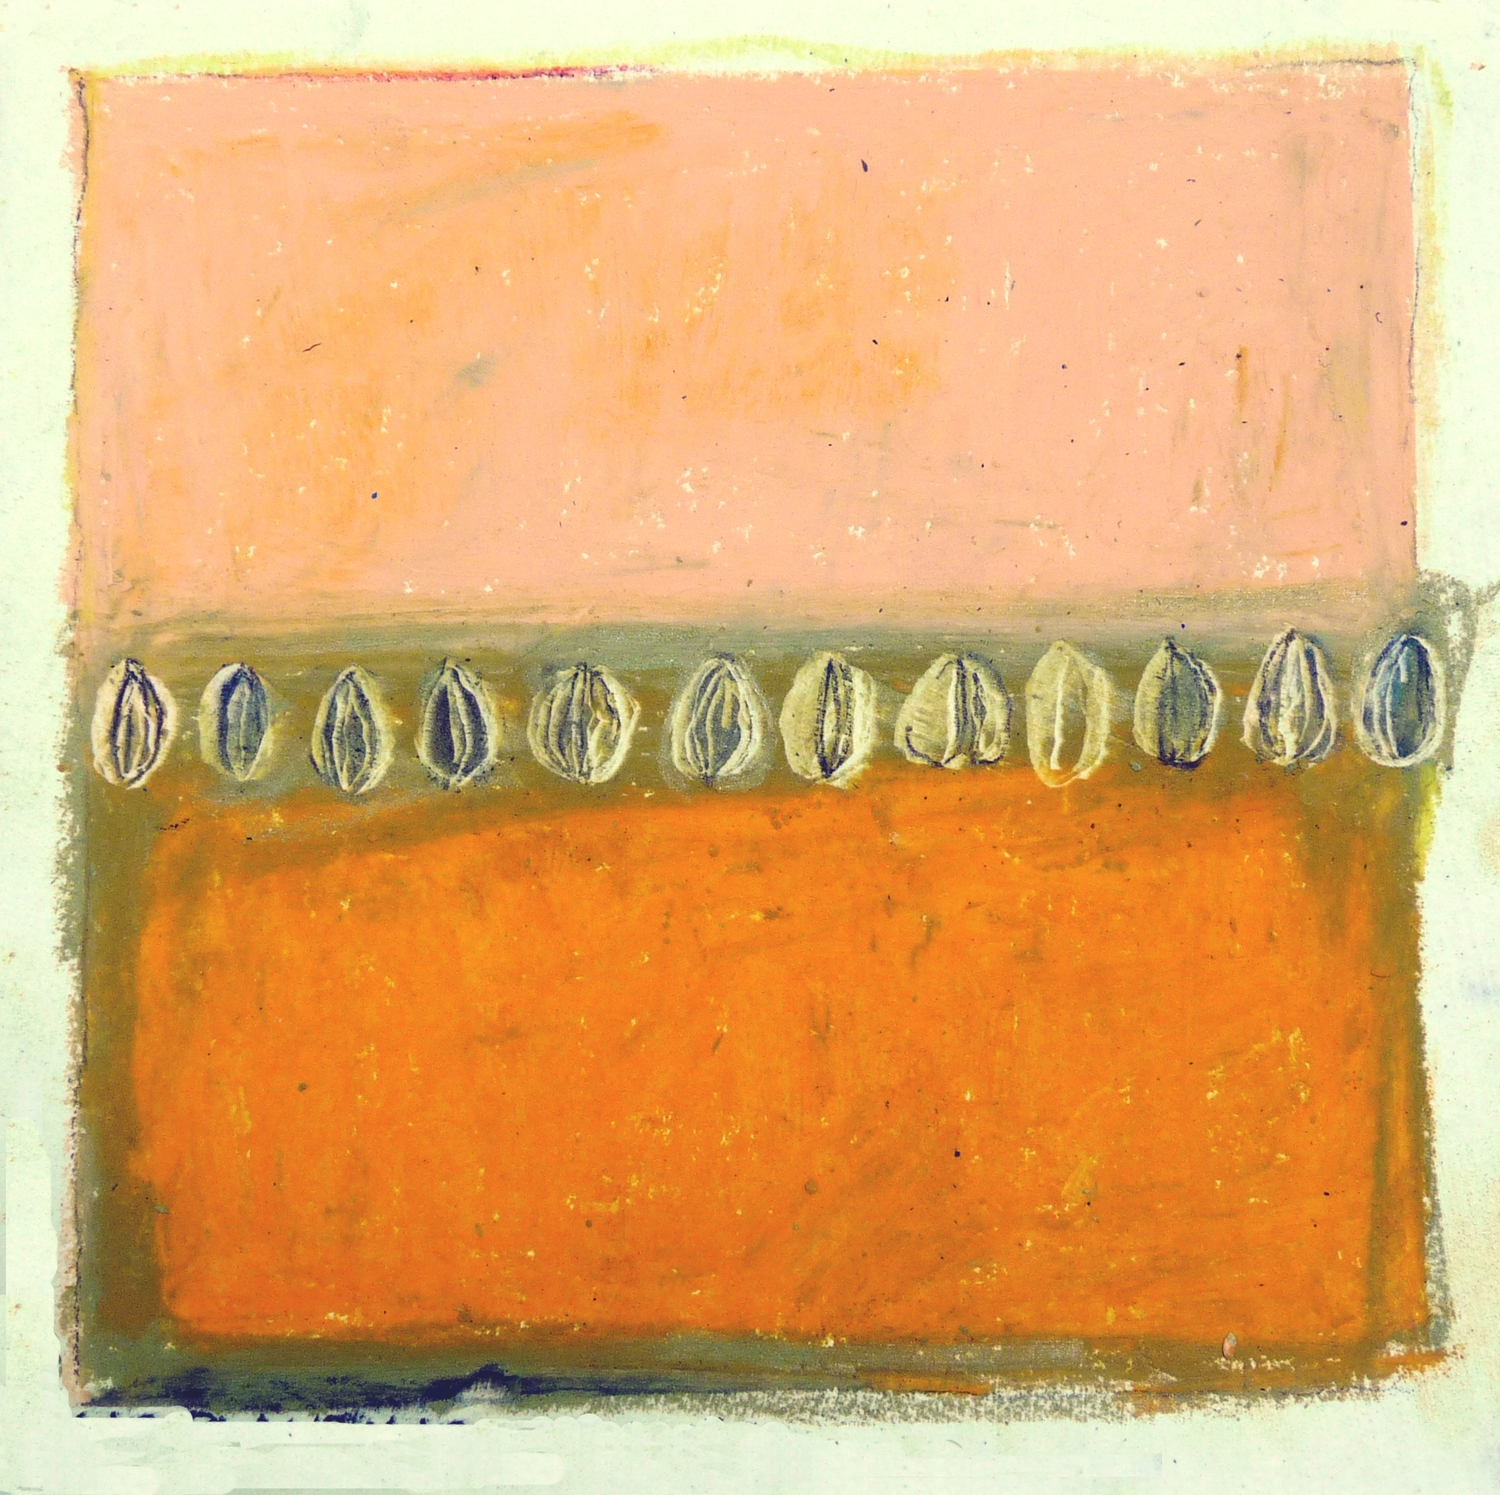 Planting New Seeds 1 (Sold)